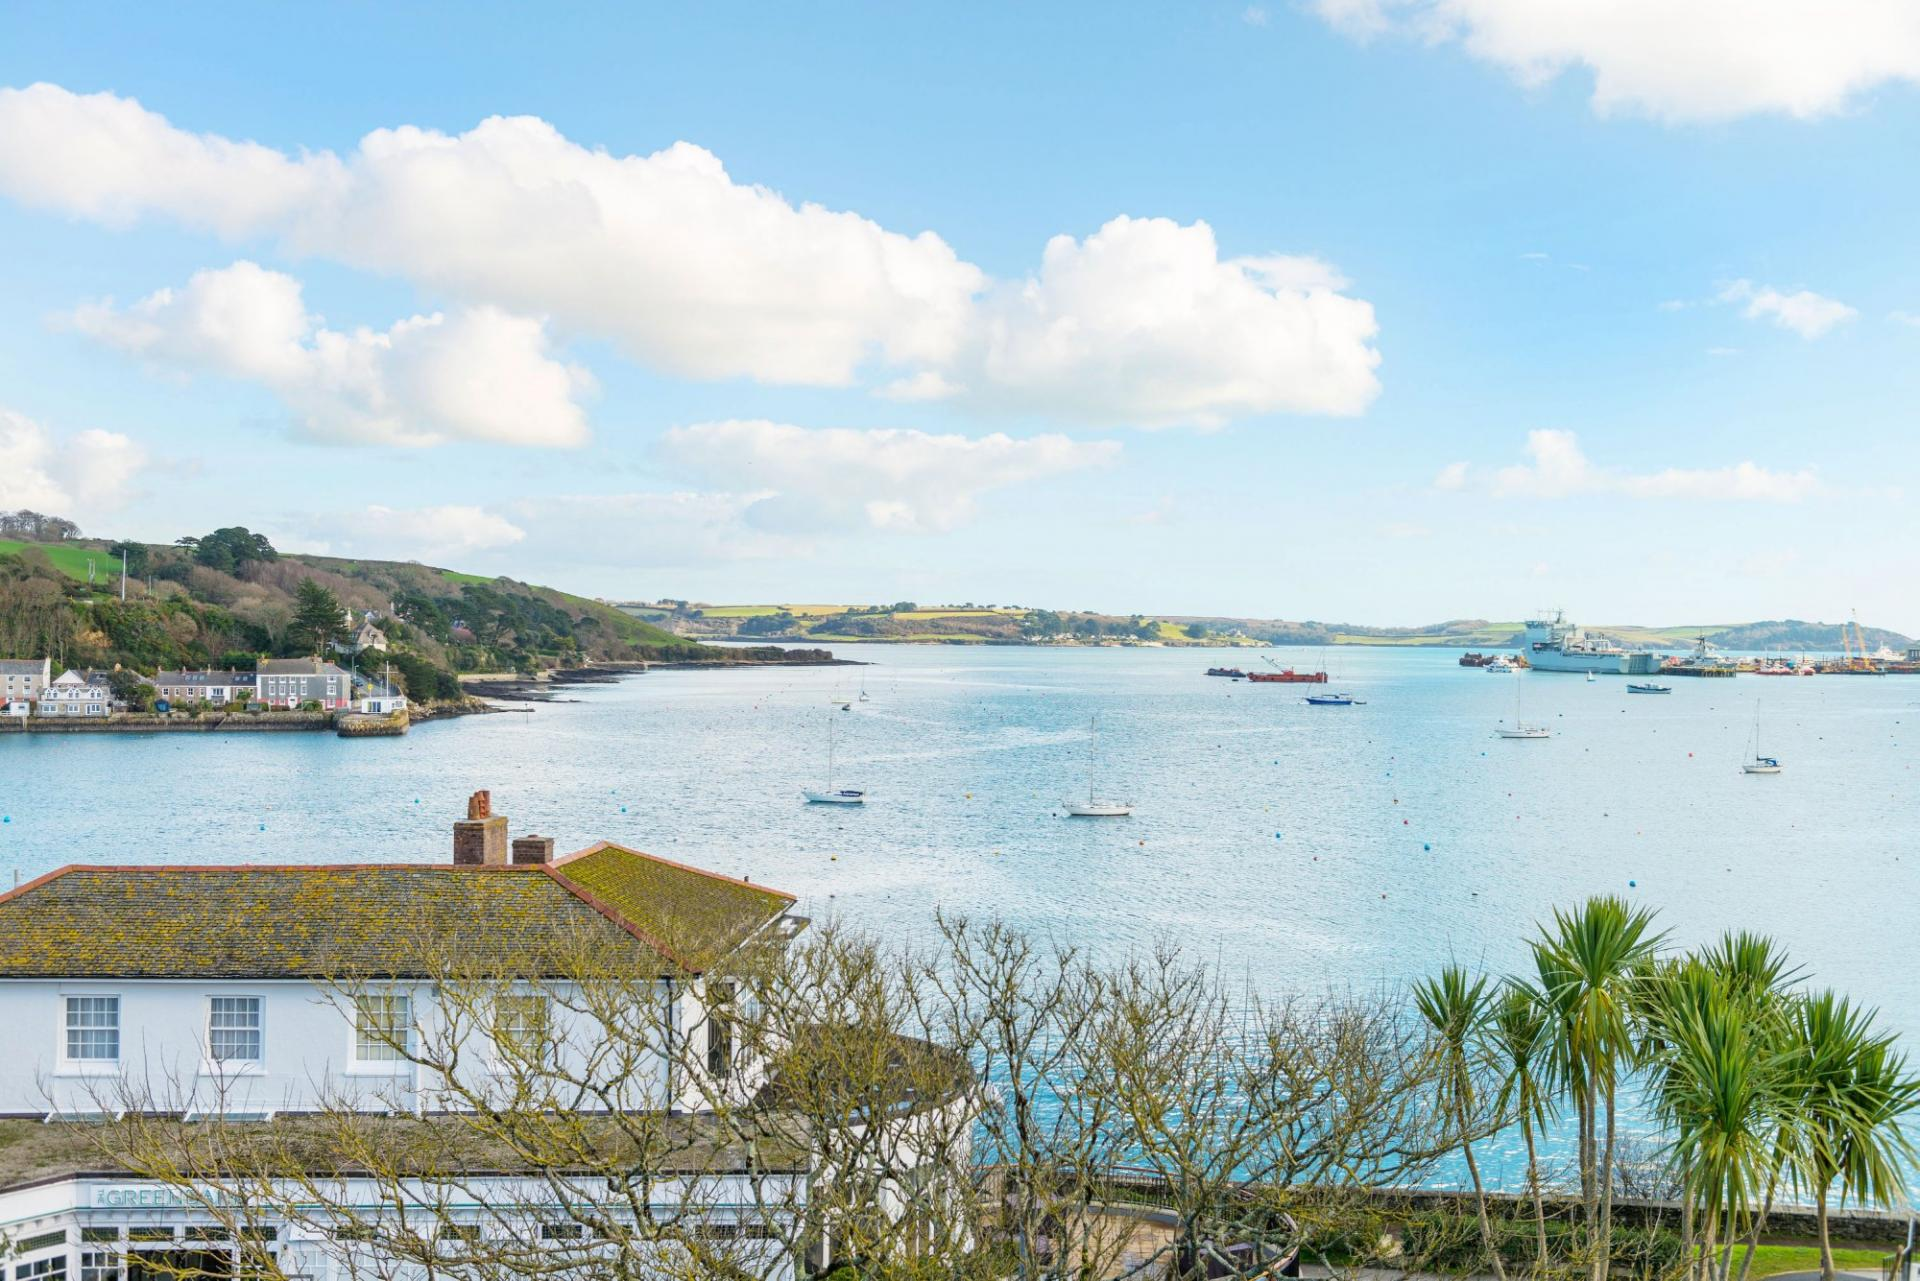 Coastal Property For Sale In Falmouth